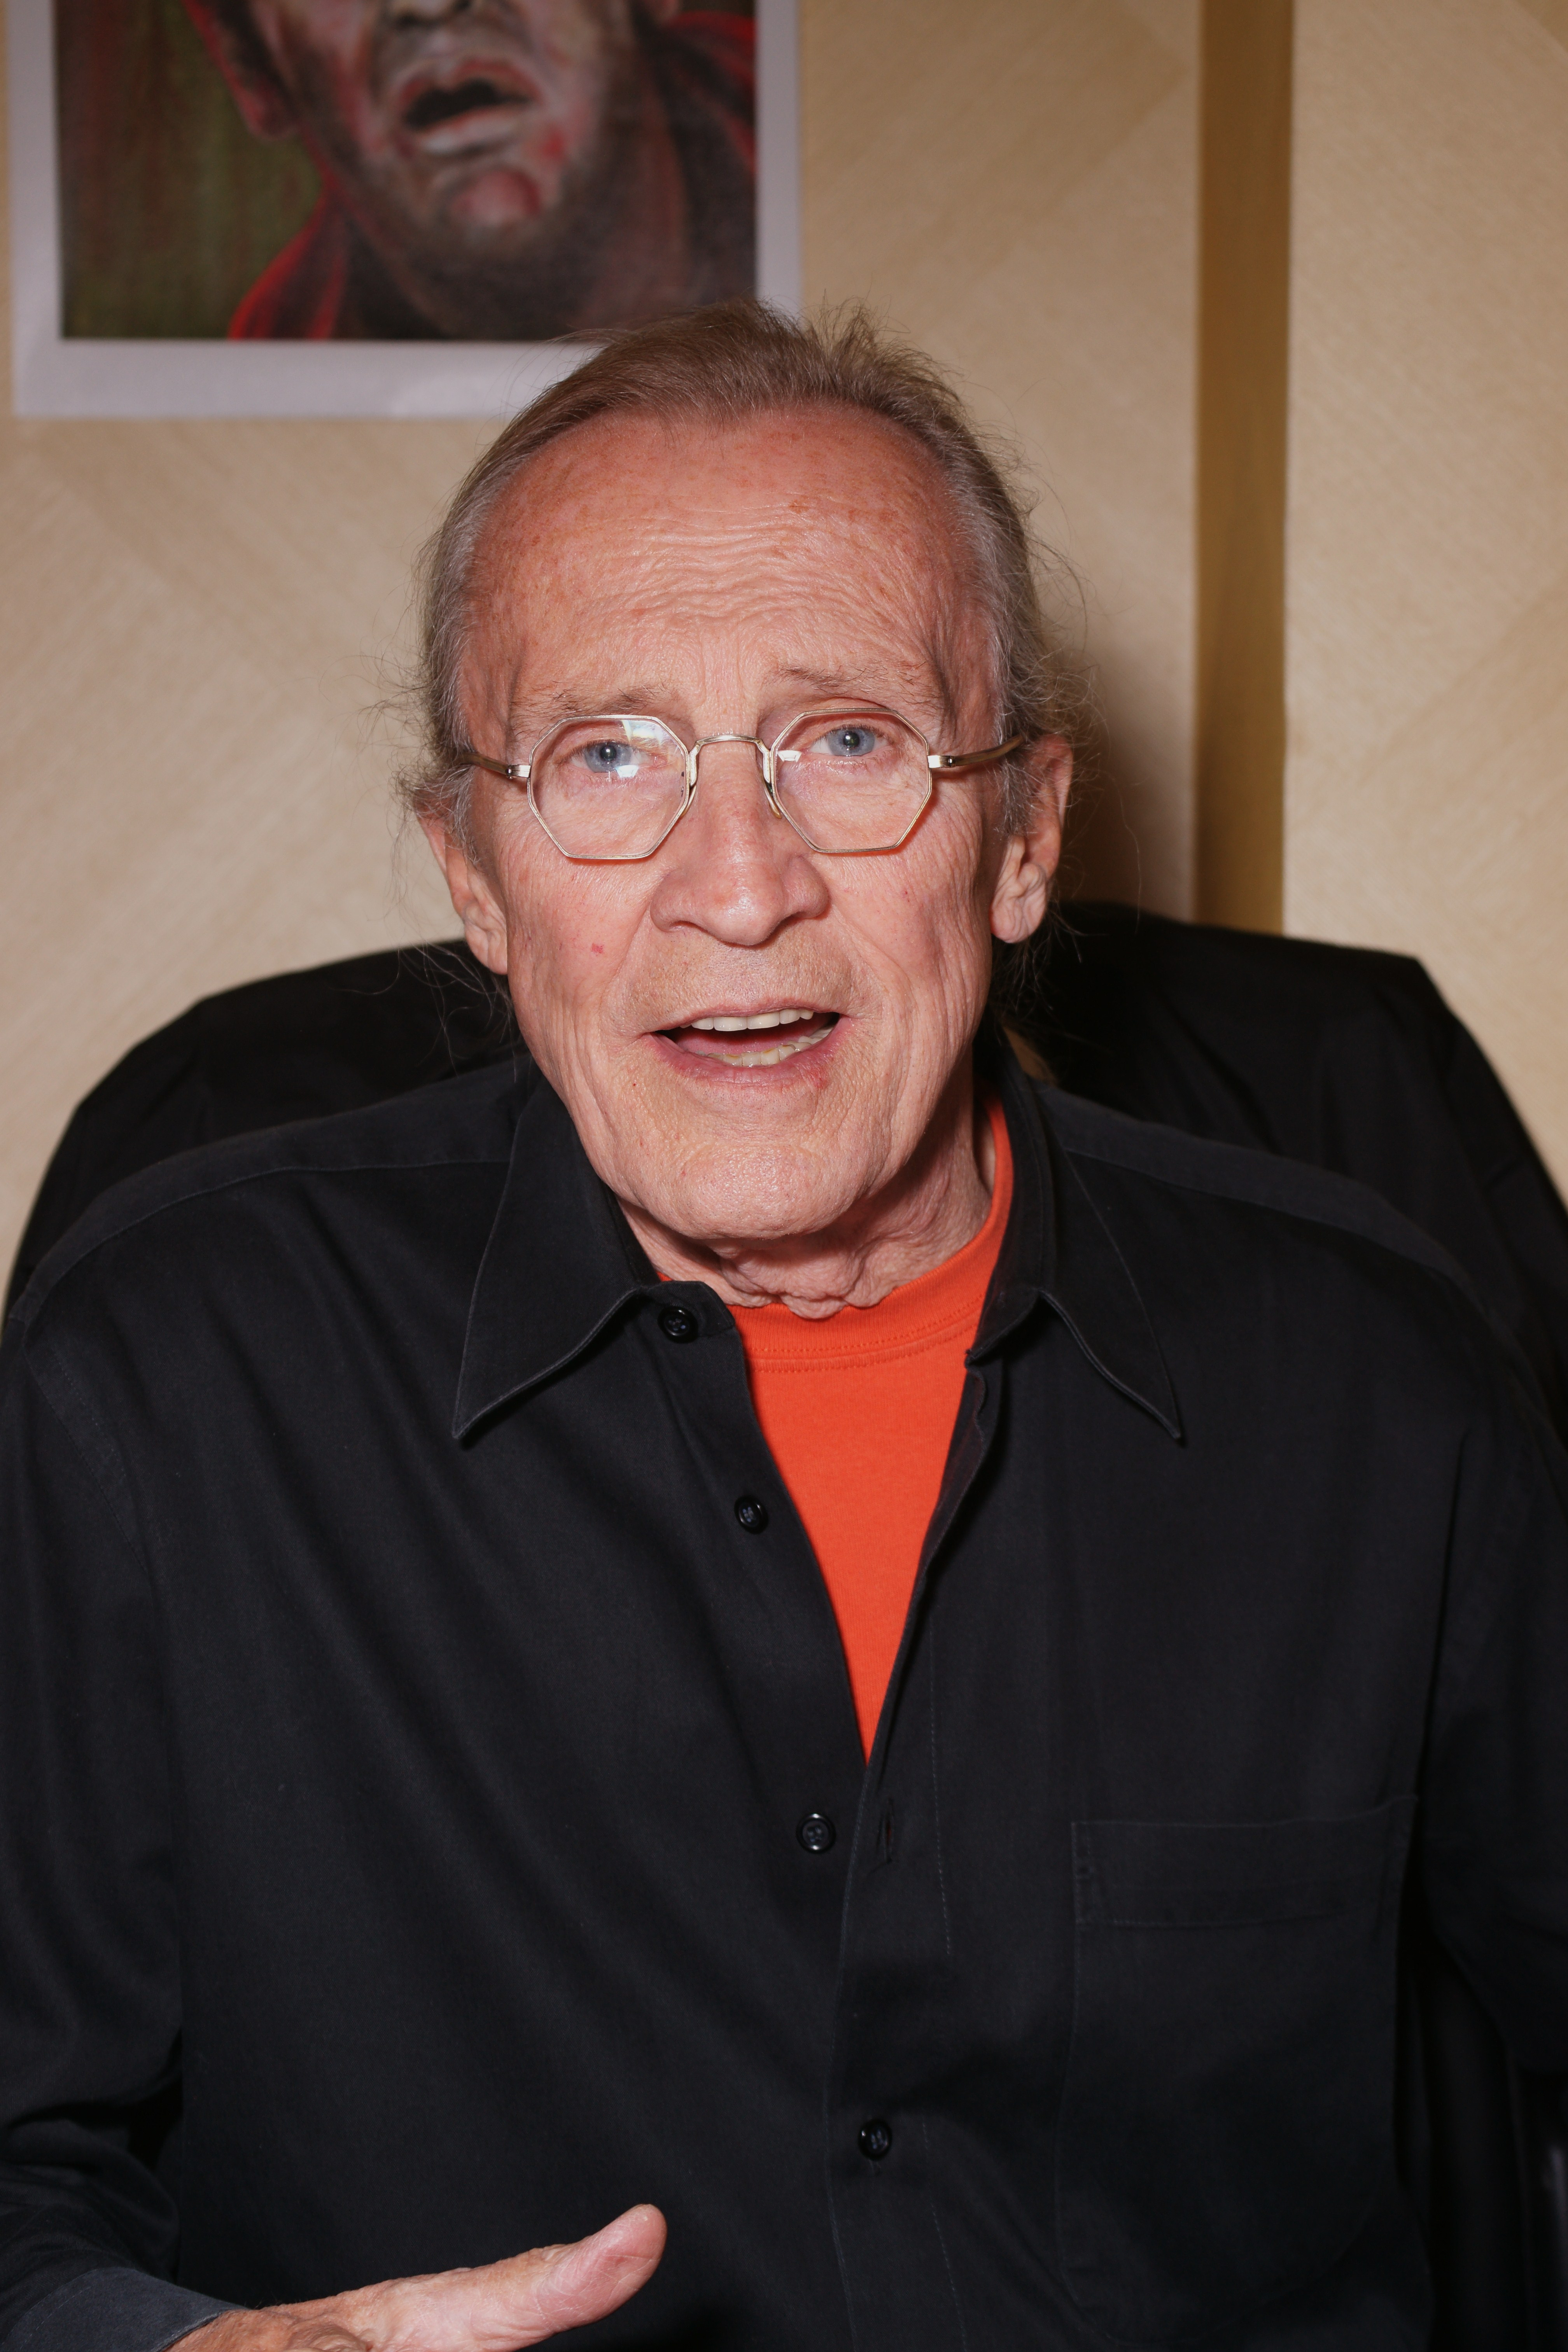 roy thinnes law and orderroy thinnes imdb, roy thinnes net worth, roy thinnes actor, roy thinnes law and order, roy thinnes bio, roy thinnes images, roy thinnes photos, roy thinnes actor biography, roy thinnes now, roy thinnes tv, roy thinnes dead or alive, roy thinnes spouse, roy thinnes 2016, roy thinnes invaders, roy thinnes one life to live, roy thinnes movies and tv shows, roy thinnes family plot, roy thinnes star trek, roy thinnes interview, roy thinnes 2017